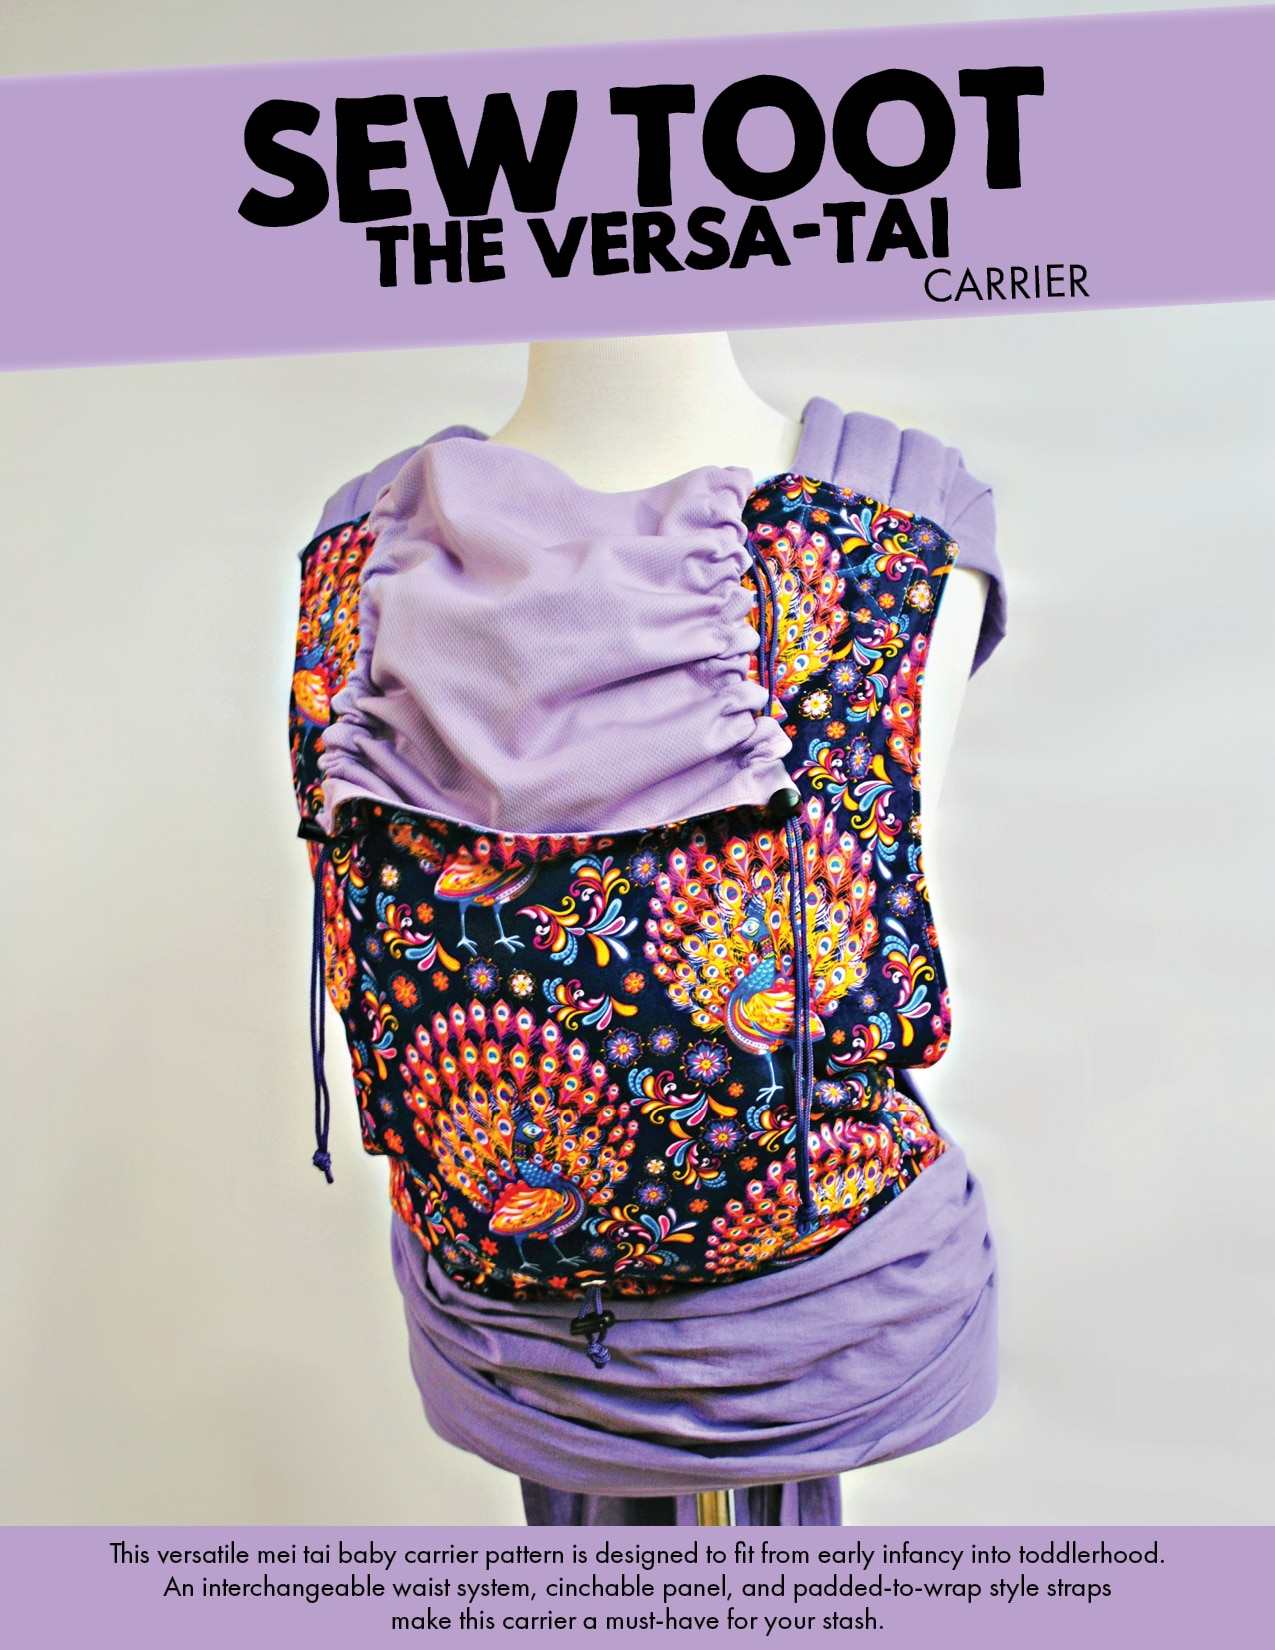 Adjustable Book Cover Sewing Pattern : Adjustable meh dai baby carrier pattern by sew toot